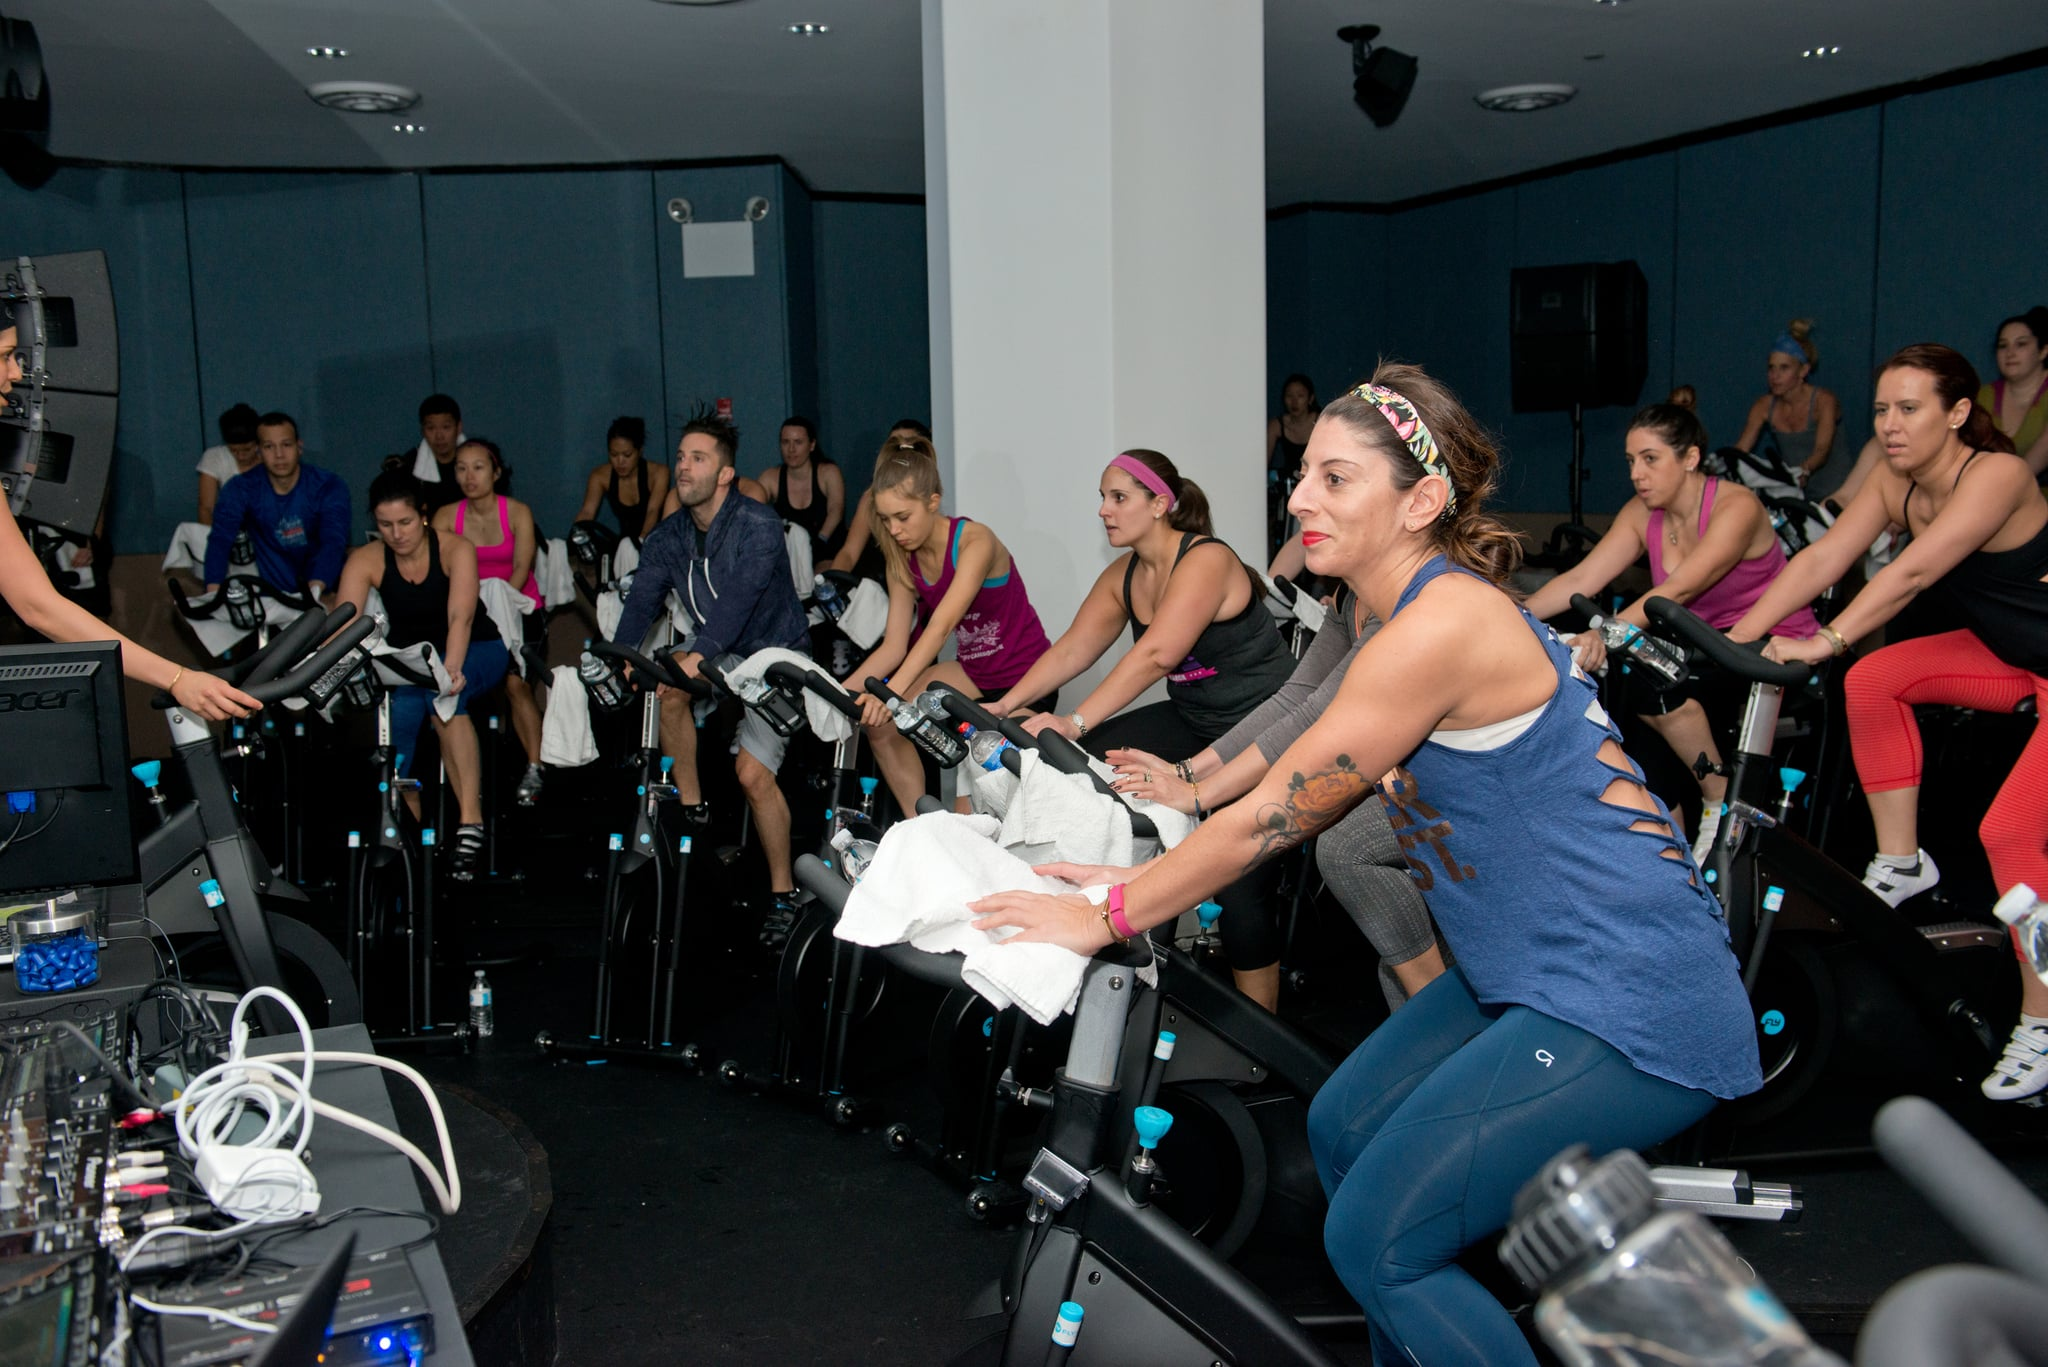 NEW YORK, NY - FEBRUARY 14:  General view of atmosphere  at the Live DJ Ride featuring DJ Cassidy at Flywheel Sports on February 14, 2014 in New York City.  (Photo by Noam Galai/Getty Images)